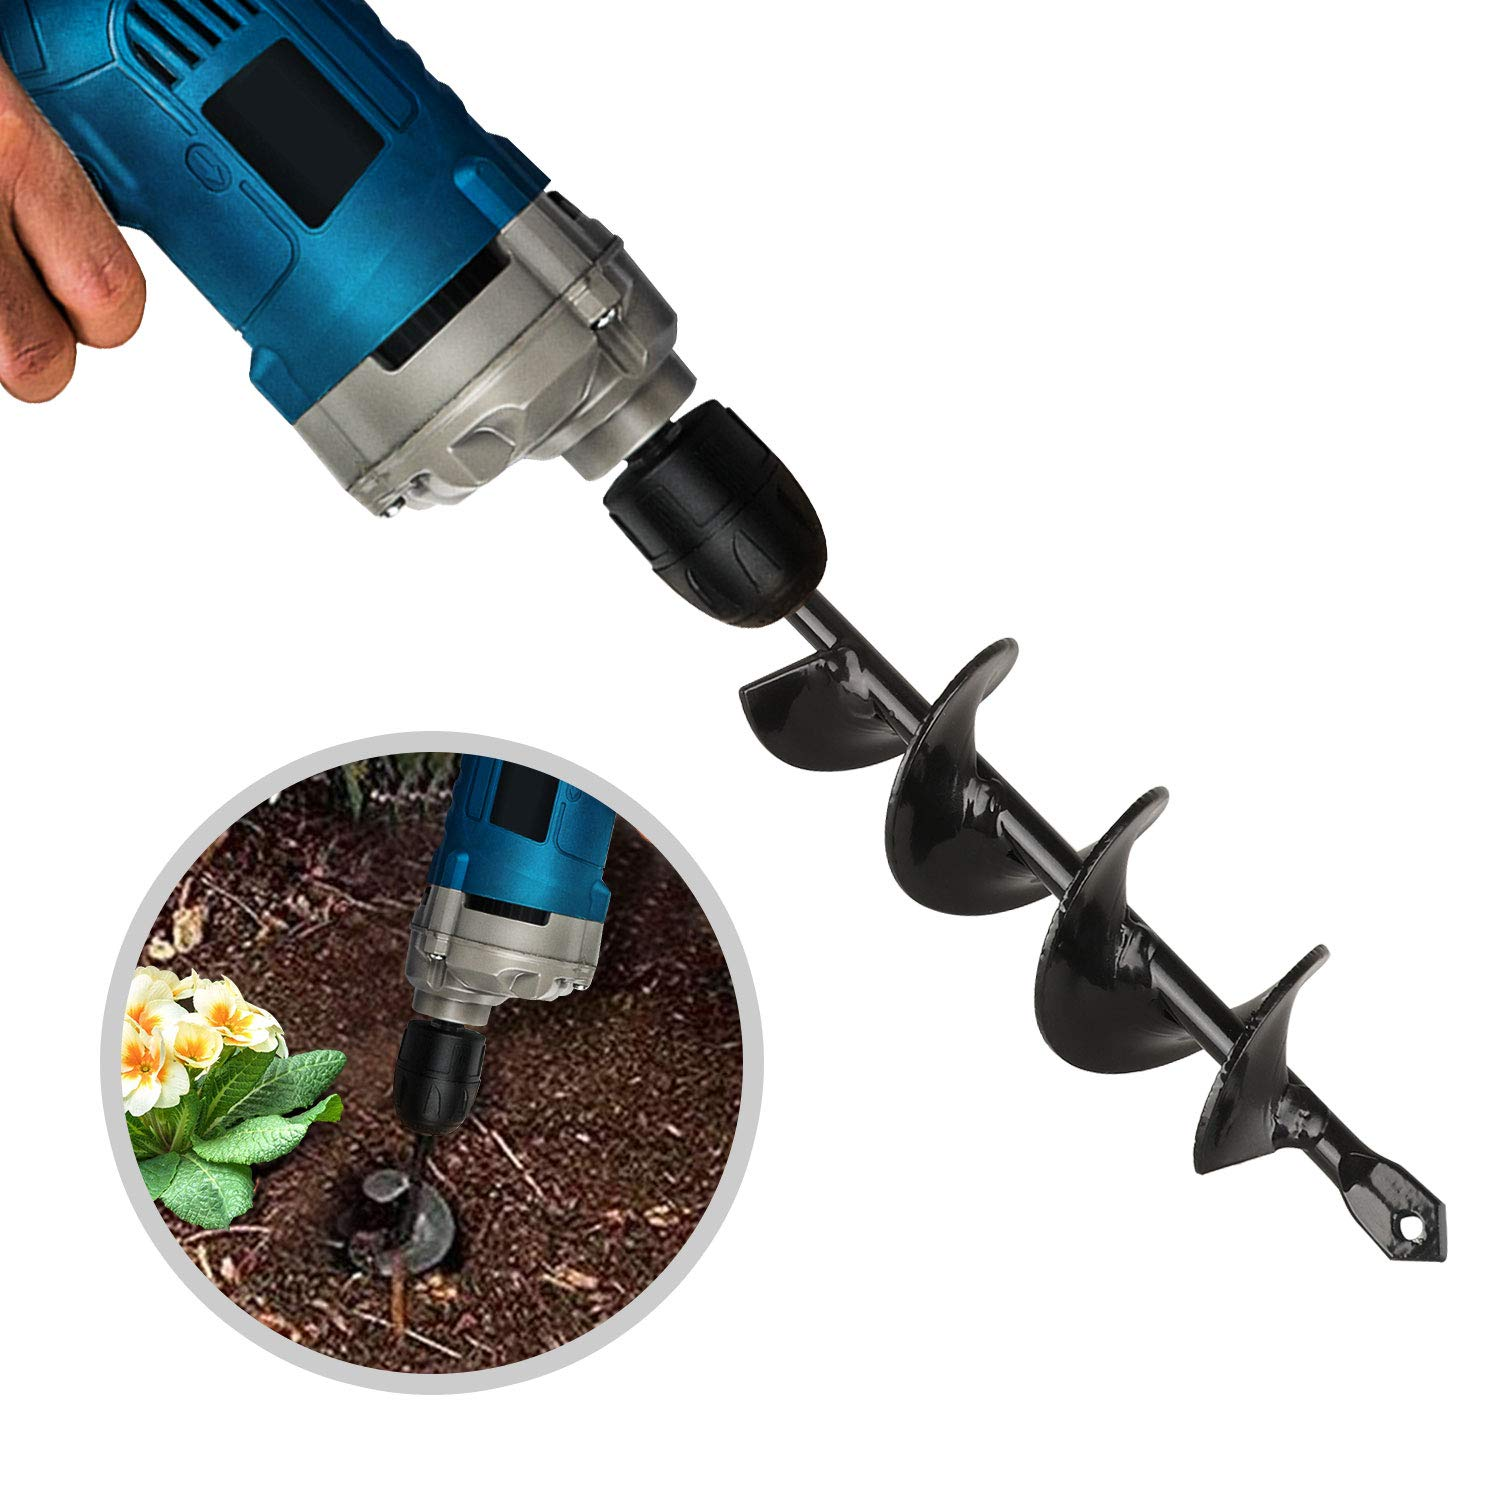 EEEKit Auger Drill Bit Garden Plant Flower Bulb Auger Rapid Planter Bulb /& Bedding Plant Auger for 3//8 Hex Drive Drill Earth Auger Drill Fence Post Umbrella Hole Digger 1.8x15 in//4.6 x37 cm